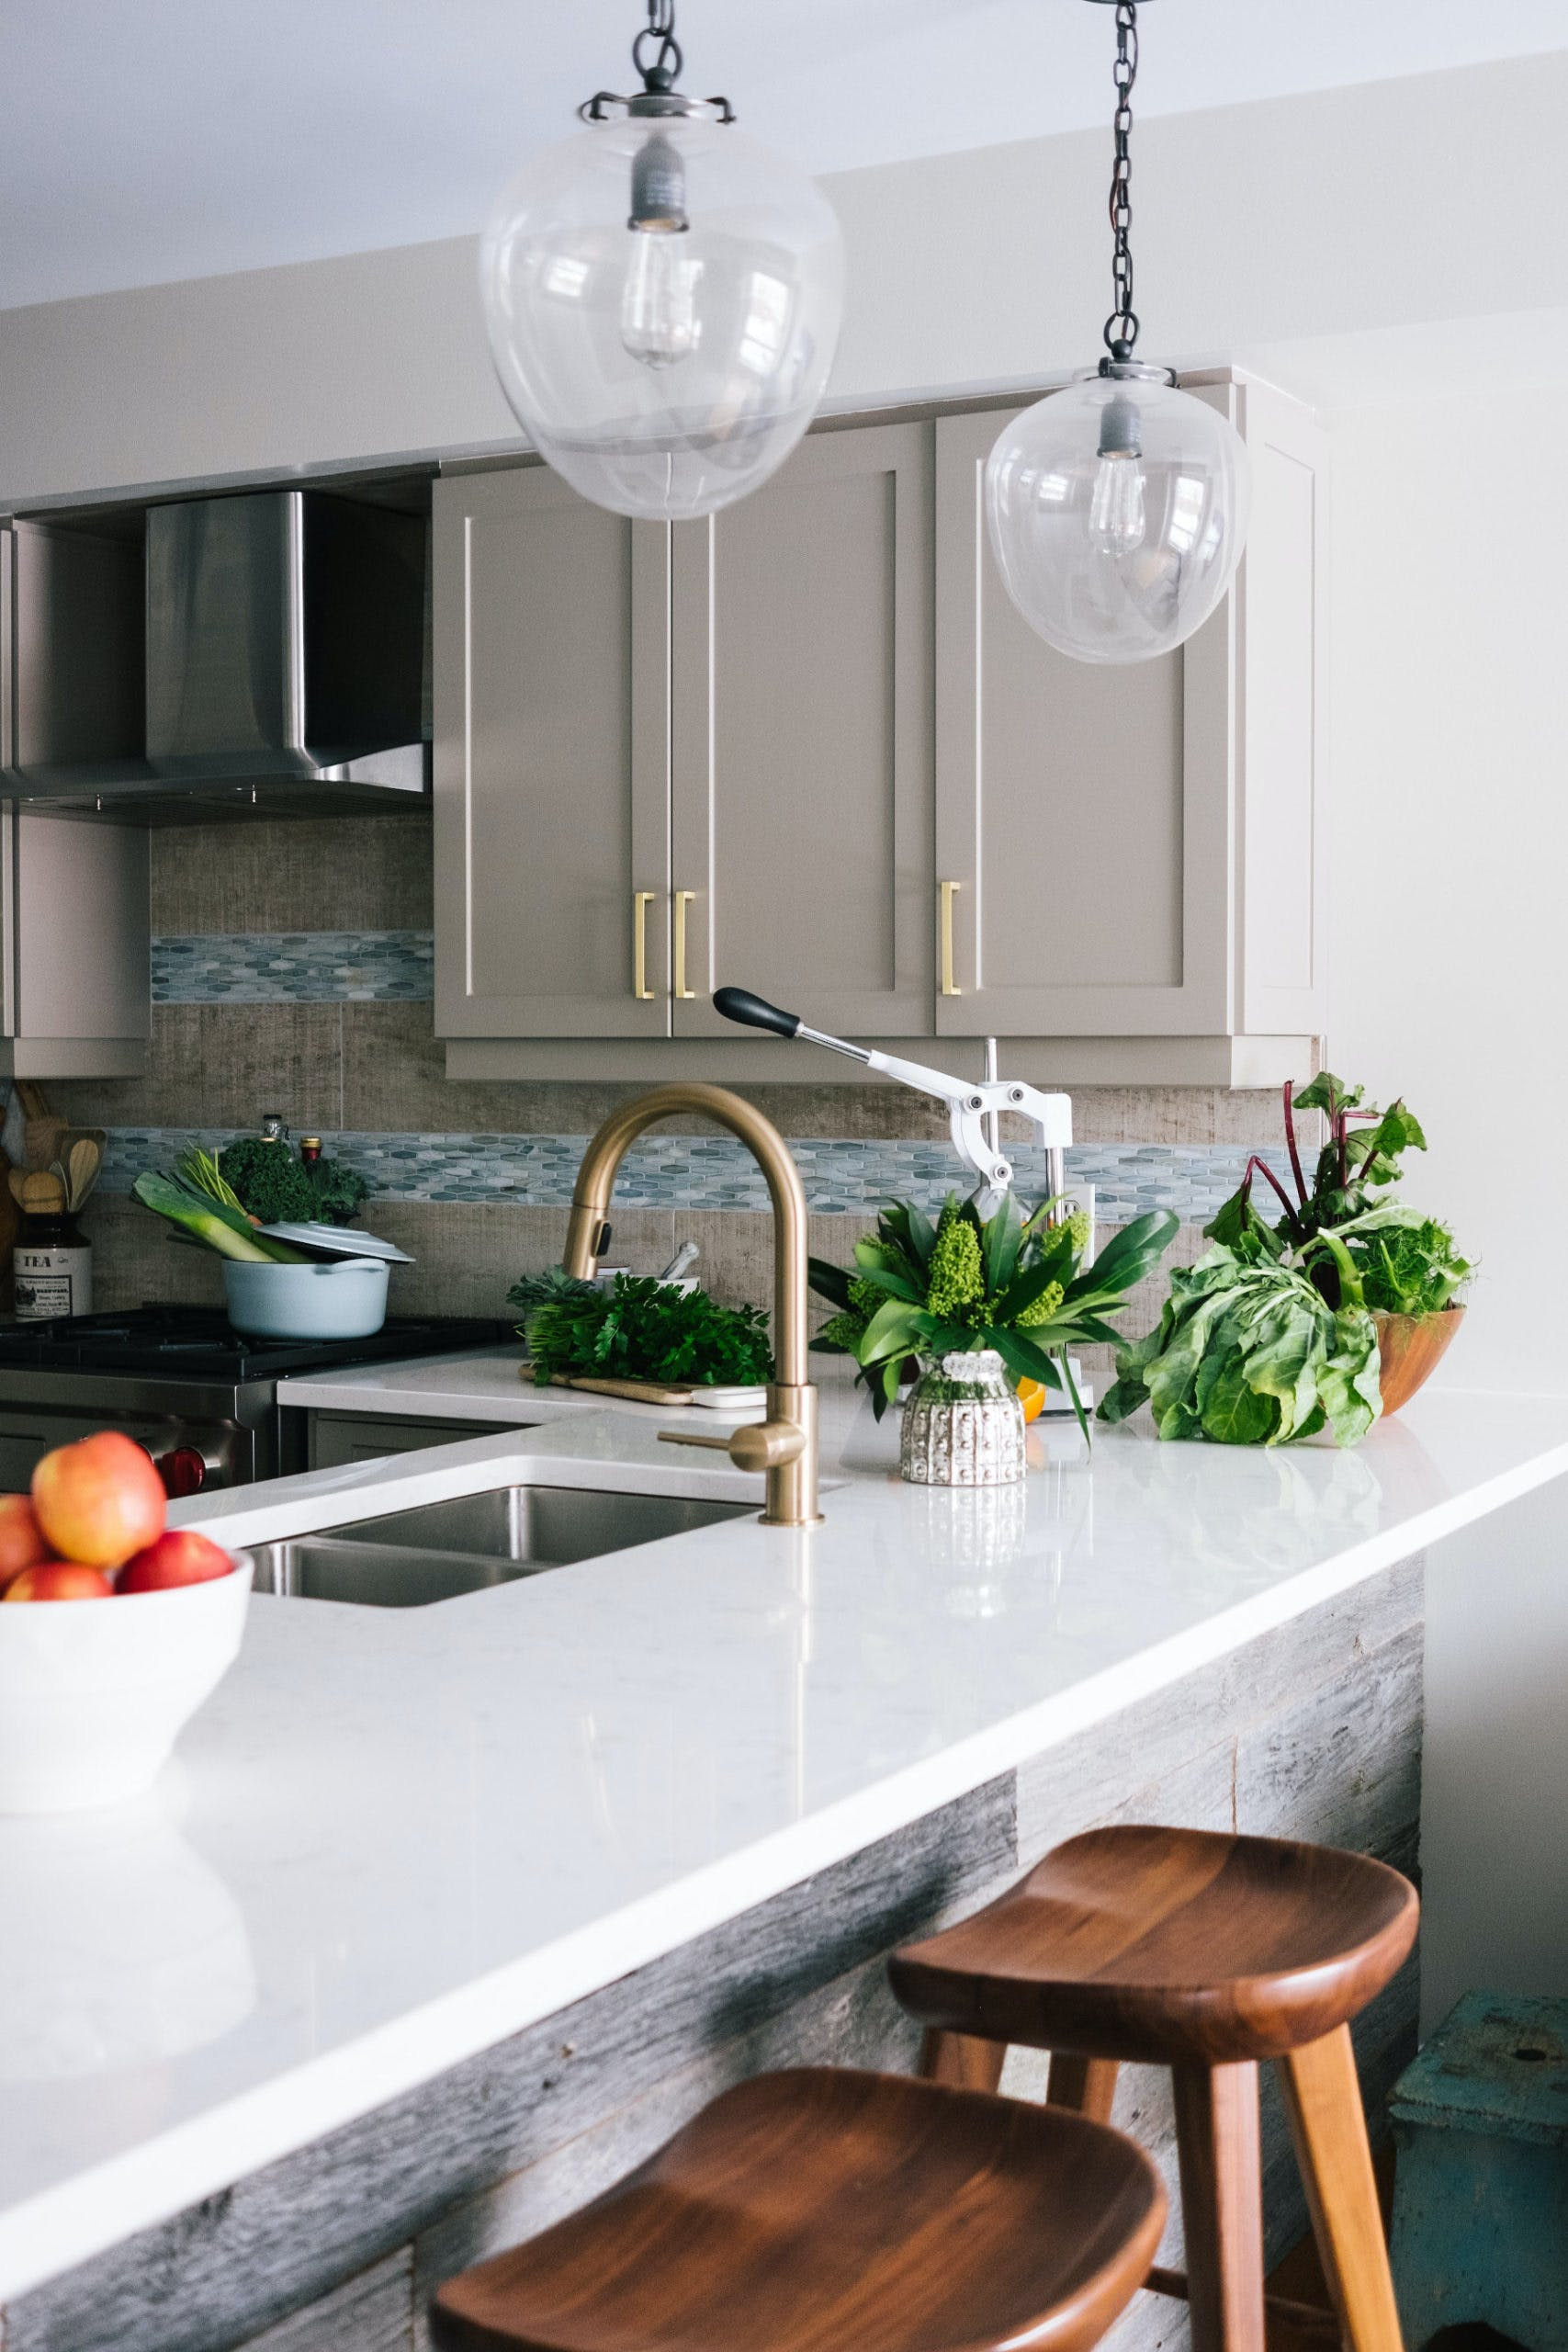 Image of christian mackie cc0Gg3BegjE unsplash 1 scaled 1 in Spending more time at home? Get the most from your kitchen with these ideas - Cosentino